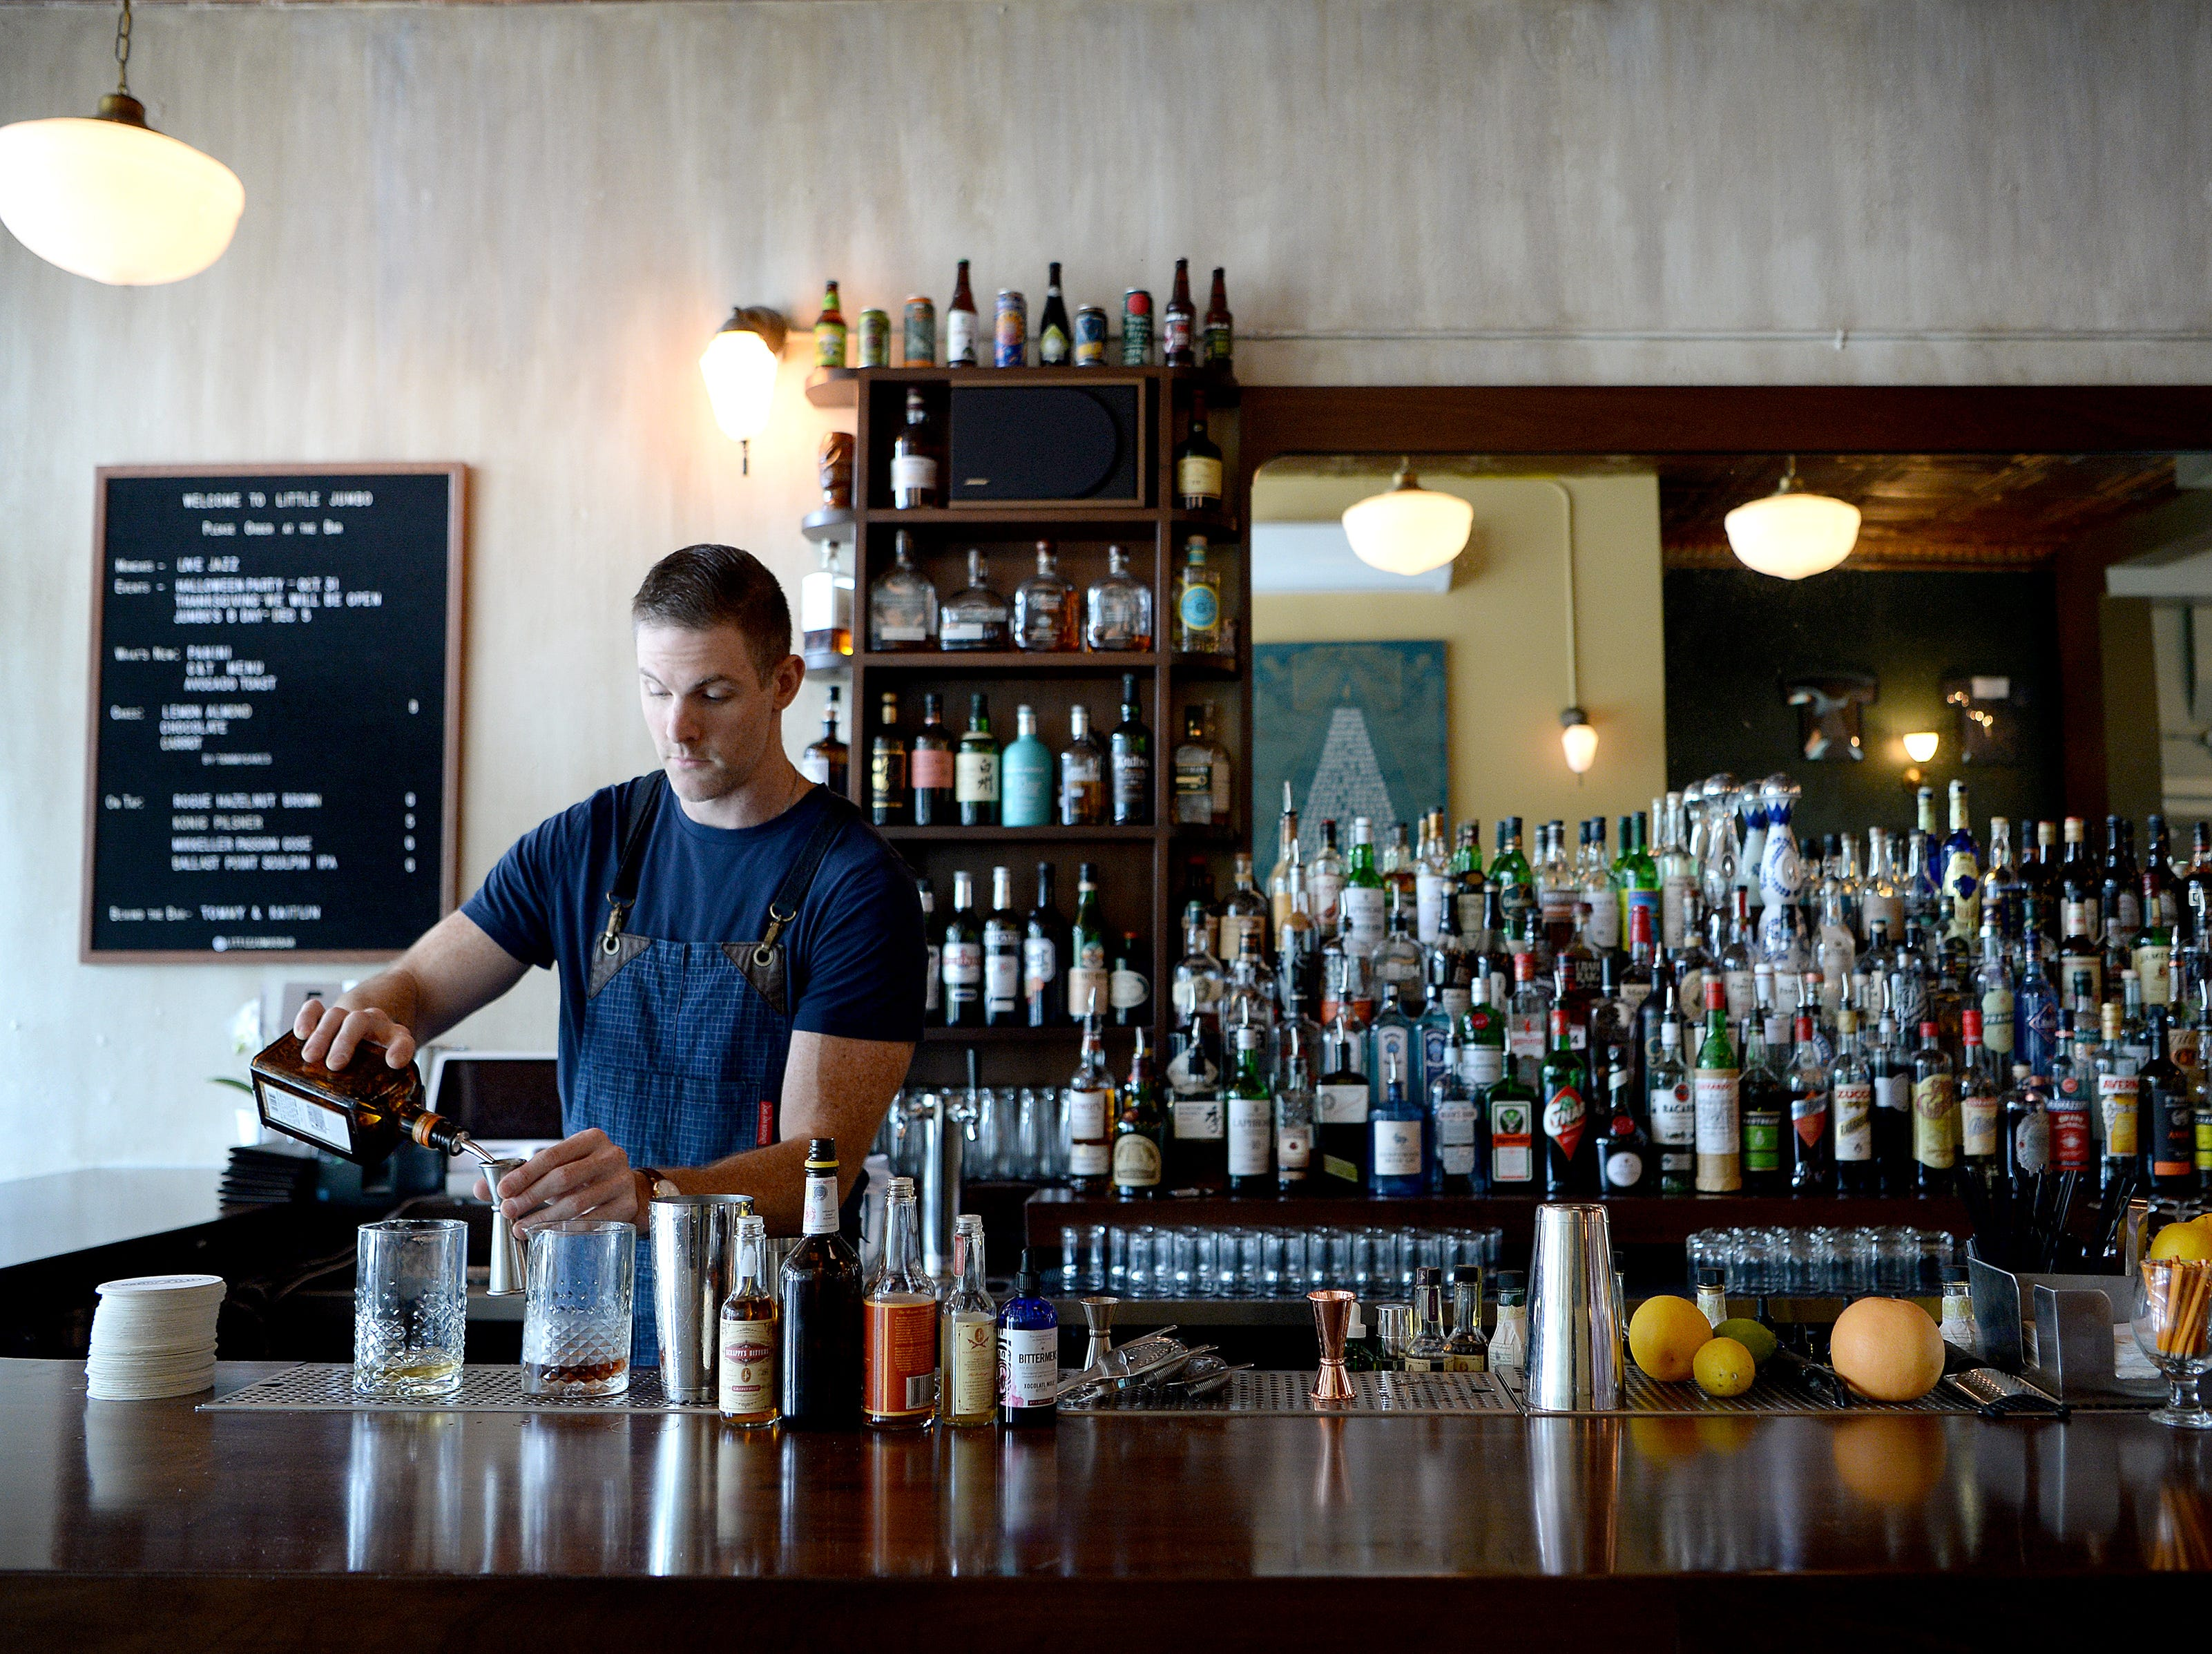 Tommy Schnell makes up a batch of drinks from behind the bar at Little Jumbo on Oct. 26, 2018.